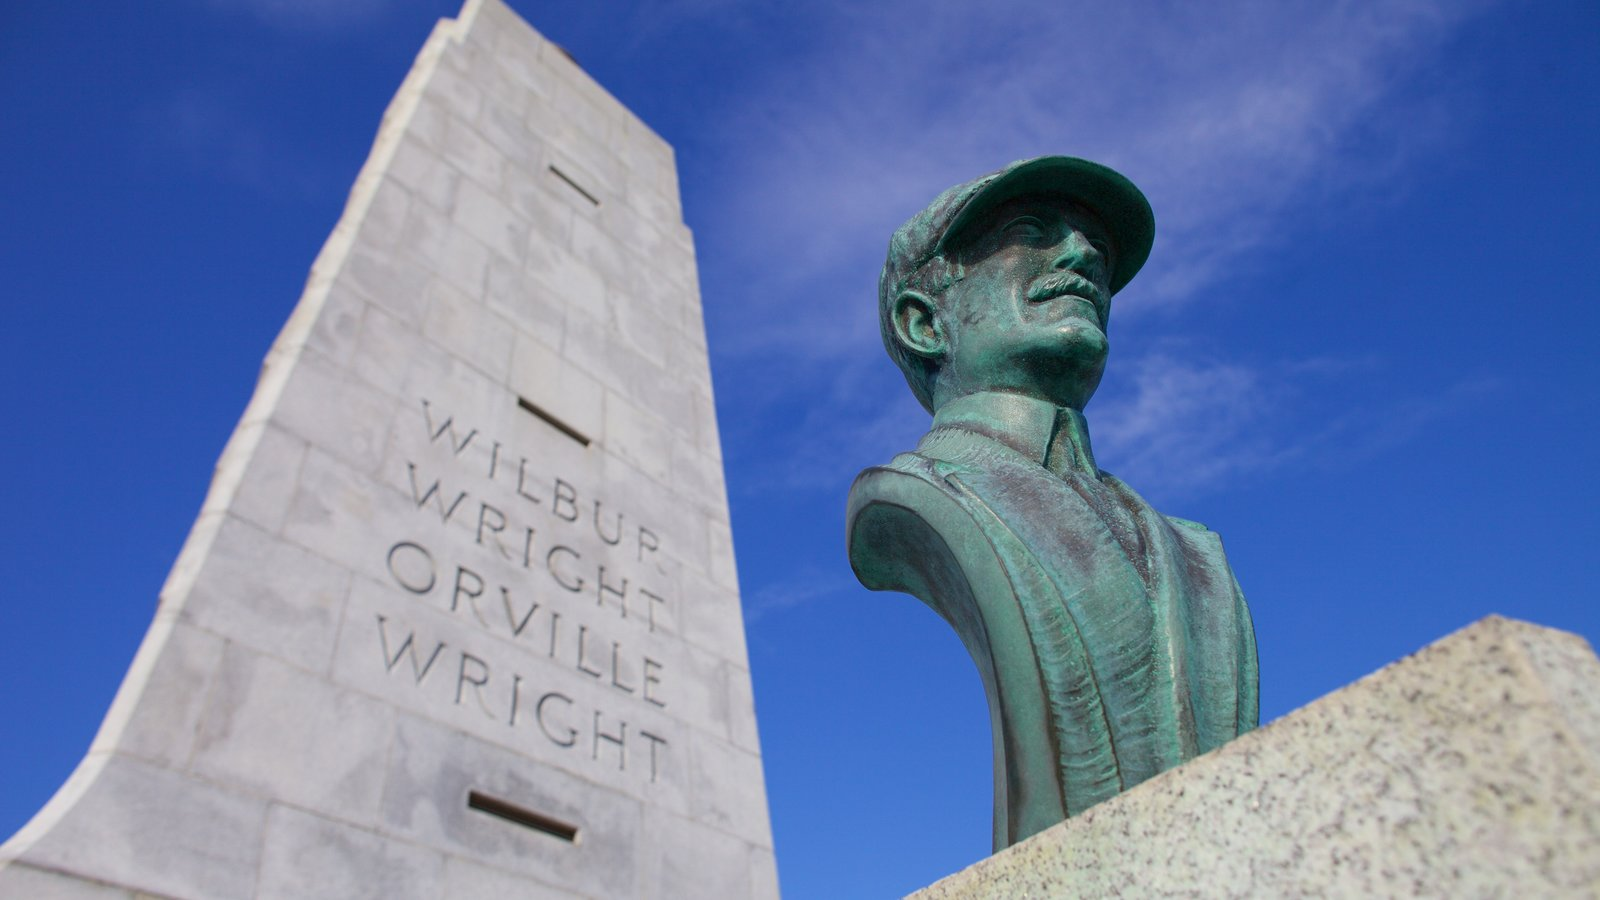 Wright Brothers National Memorial showing a statue or sculpture